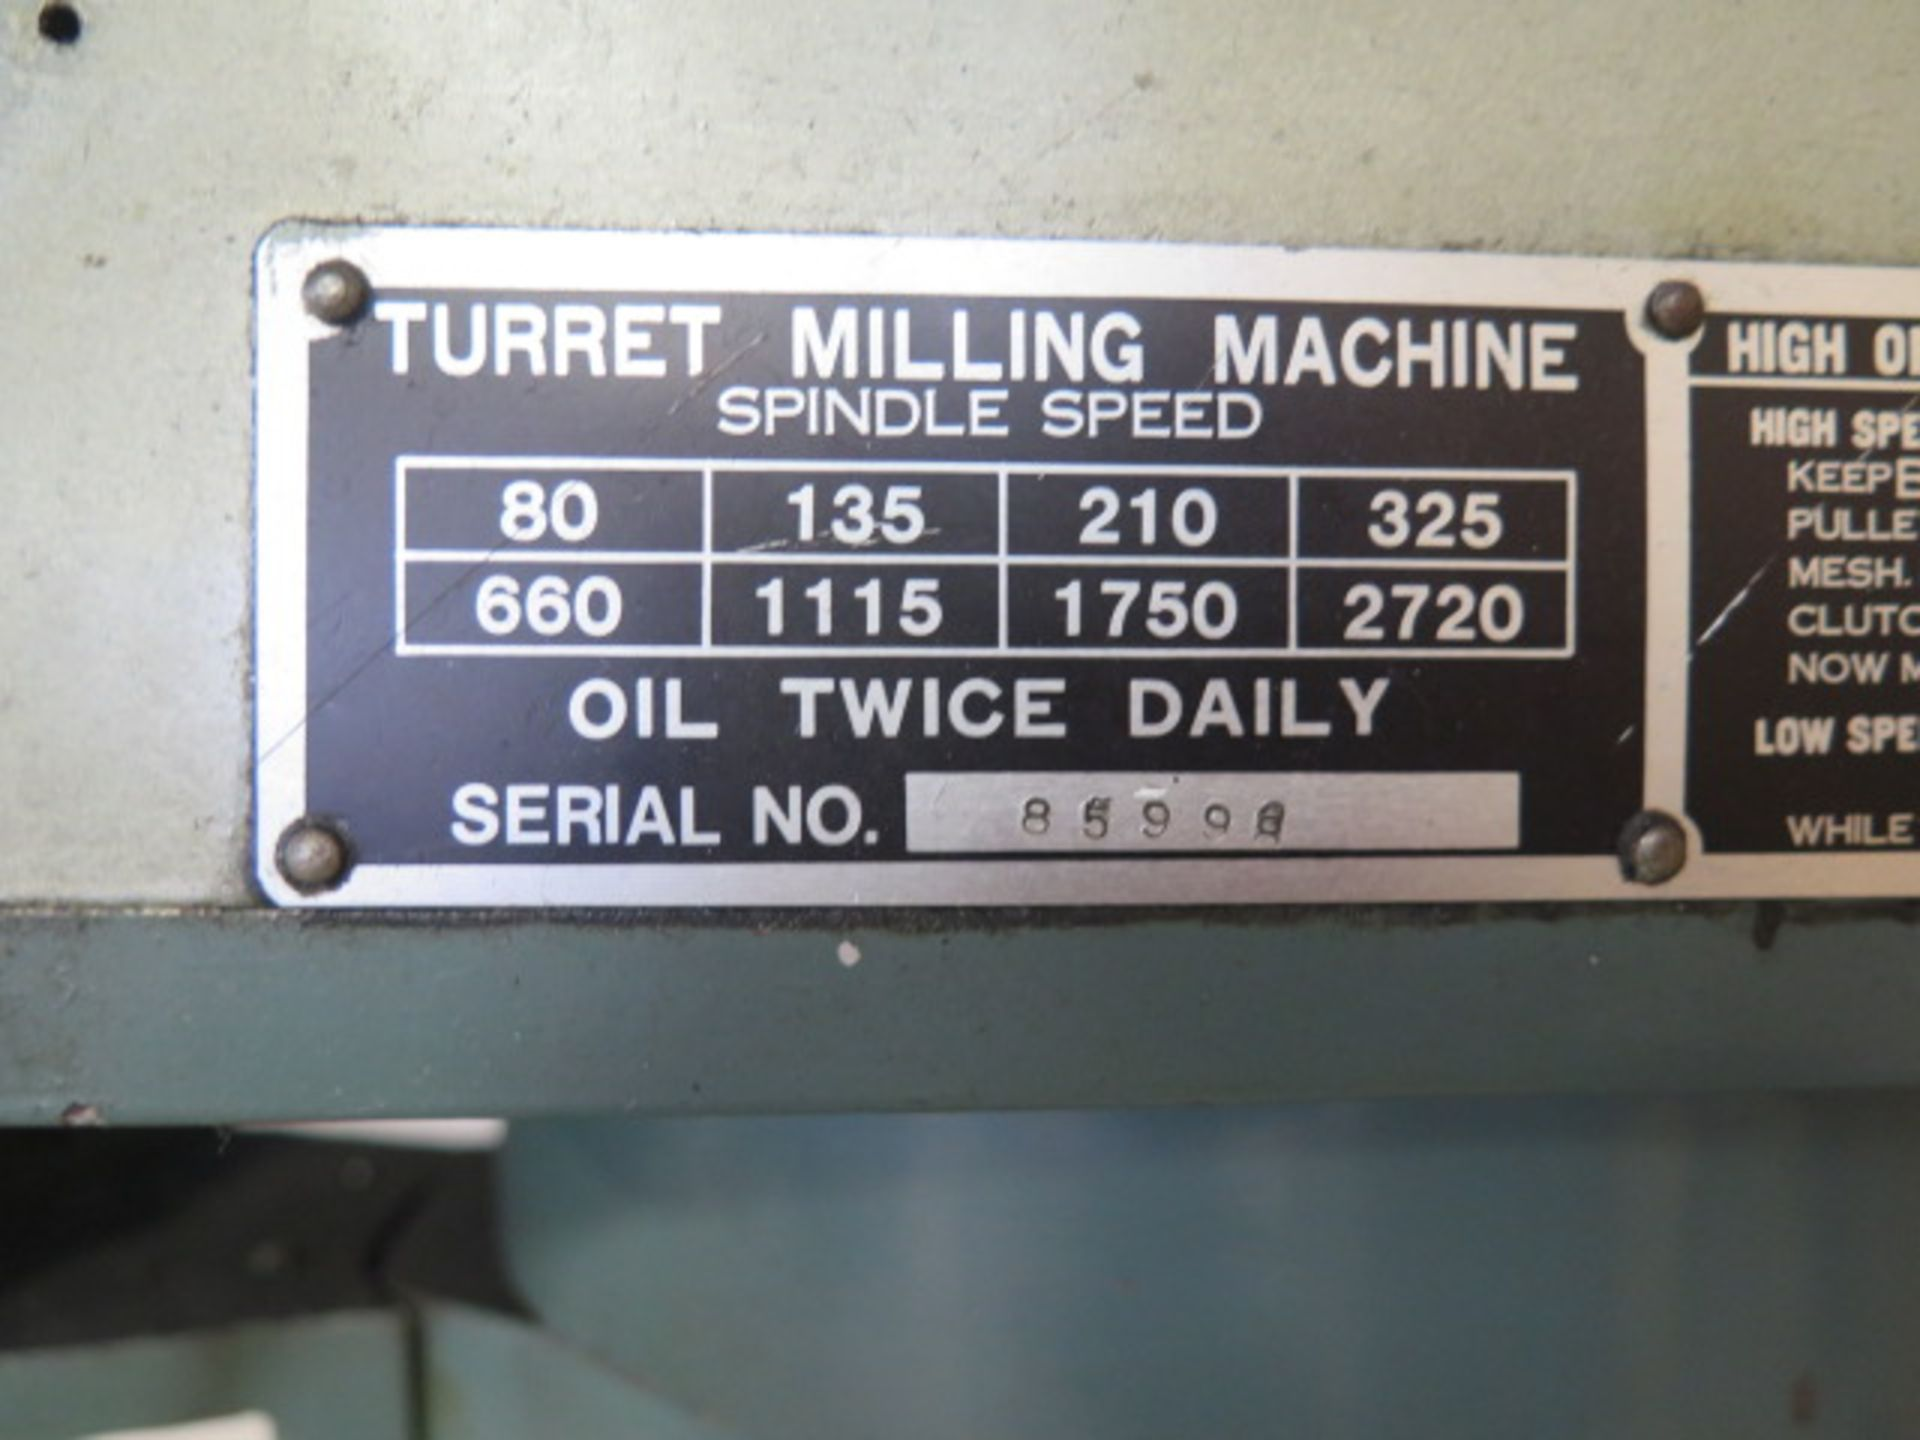 """Import Vertical Mill w/ 3Hp Motor, 80-2720 RPM, 8-Speeds, R8 Spindle, 10"""" x 48"""" Table (SOLD AS- - Image 5 of 9"""